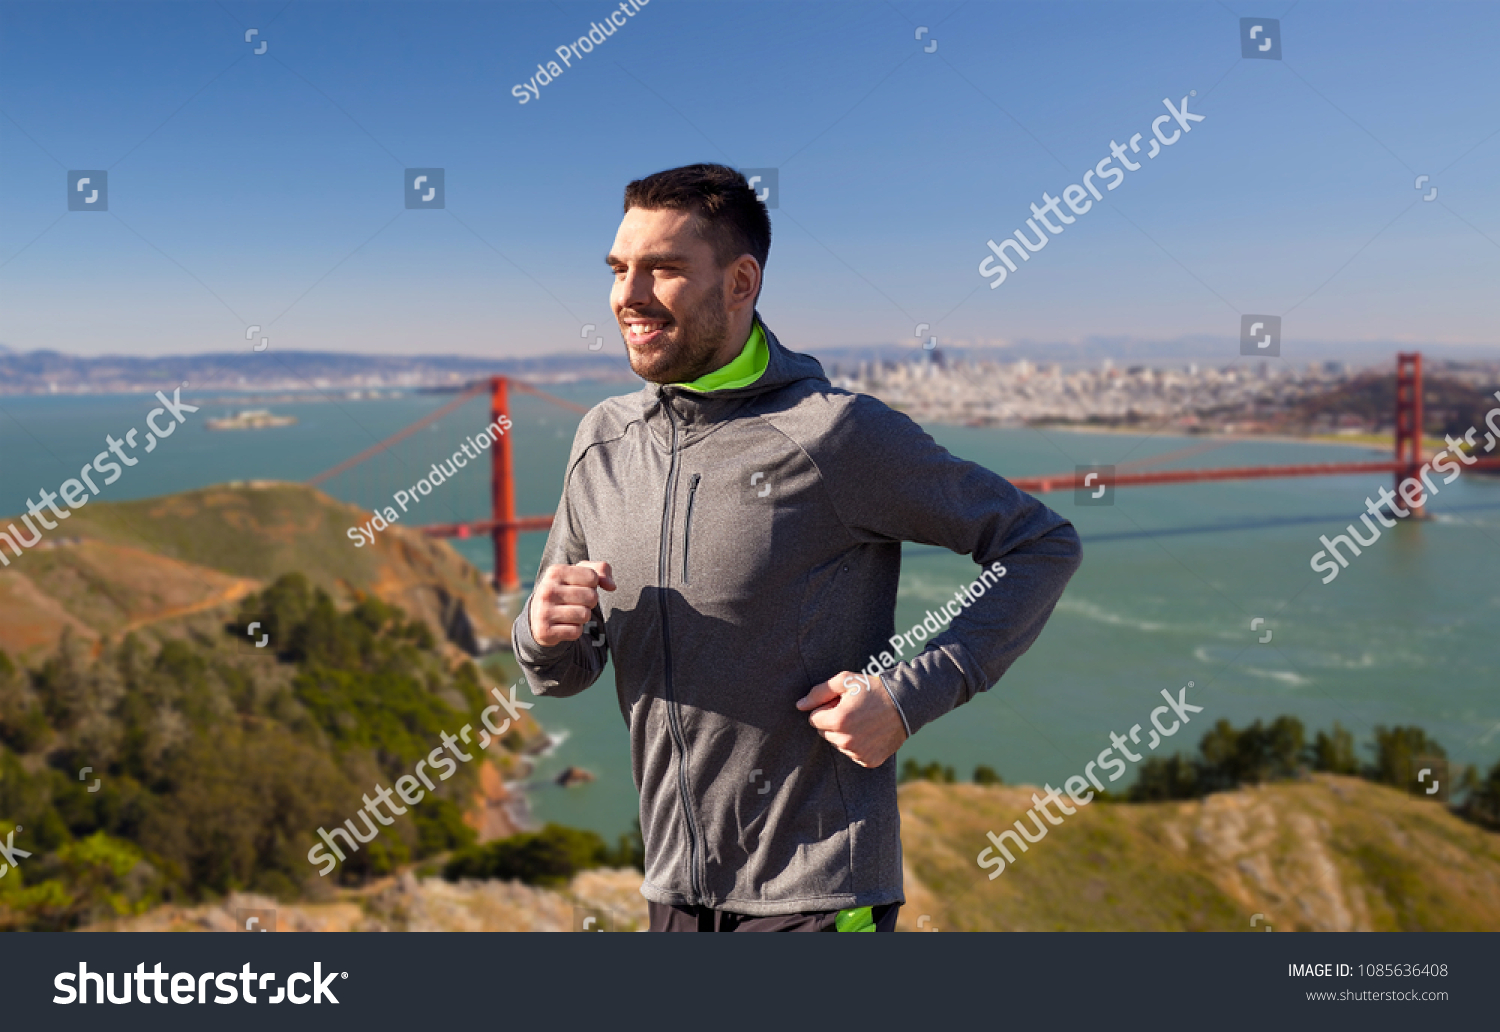 Fitness Sport People Healthy Lifestyle Concept Stock Photo